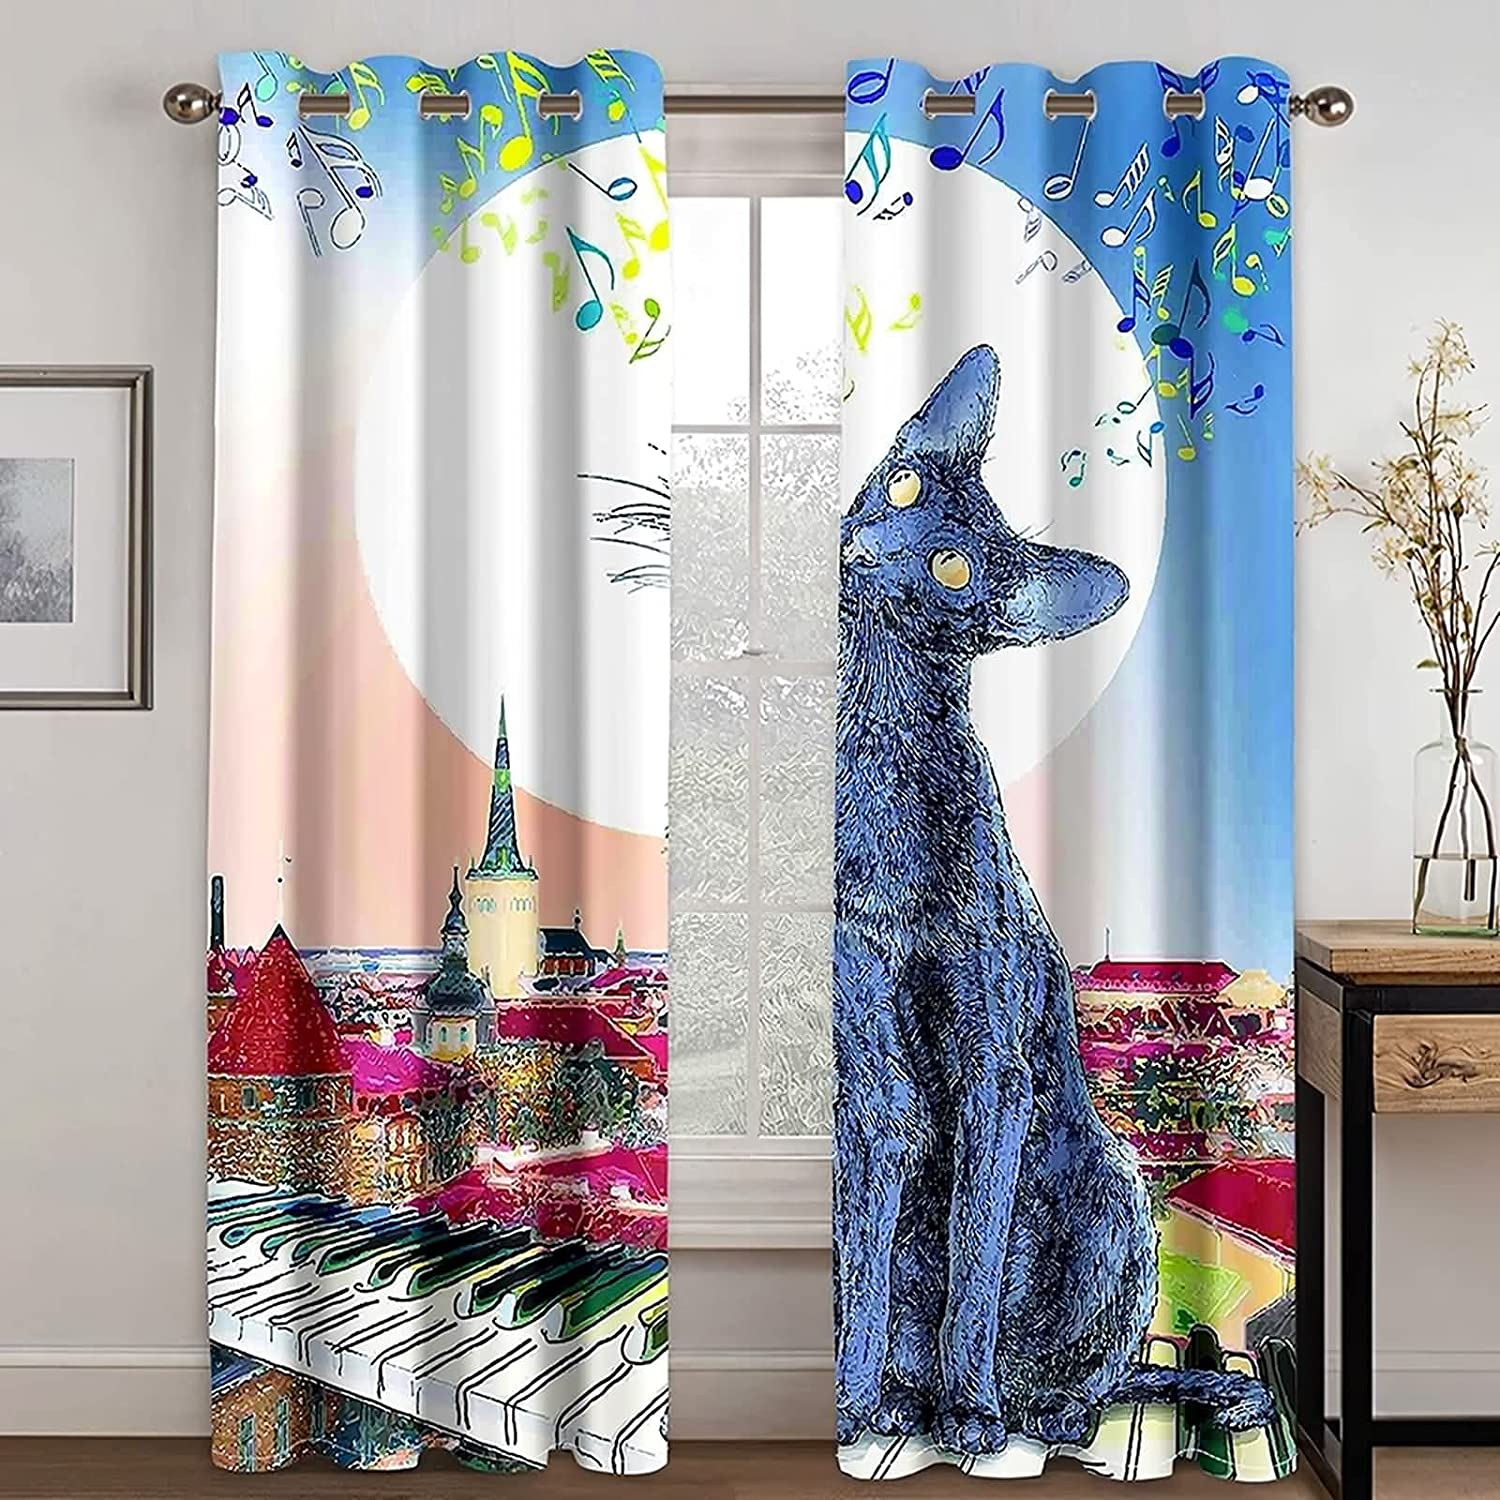 Adisaer mart Blue White Curtains for Living Cat Mus Piano and On Room Daily bargain sale